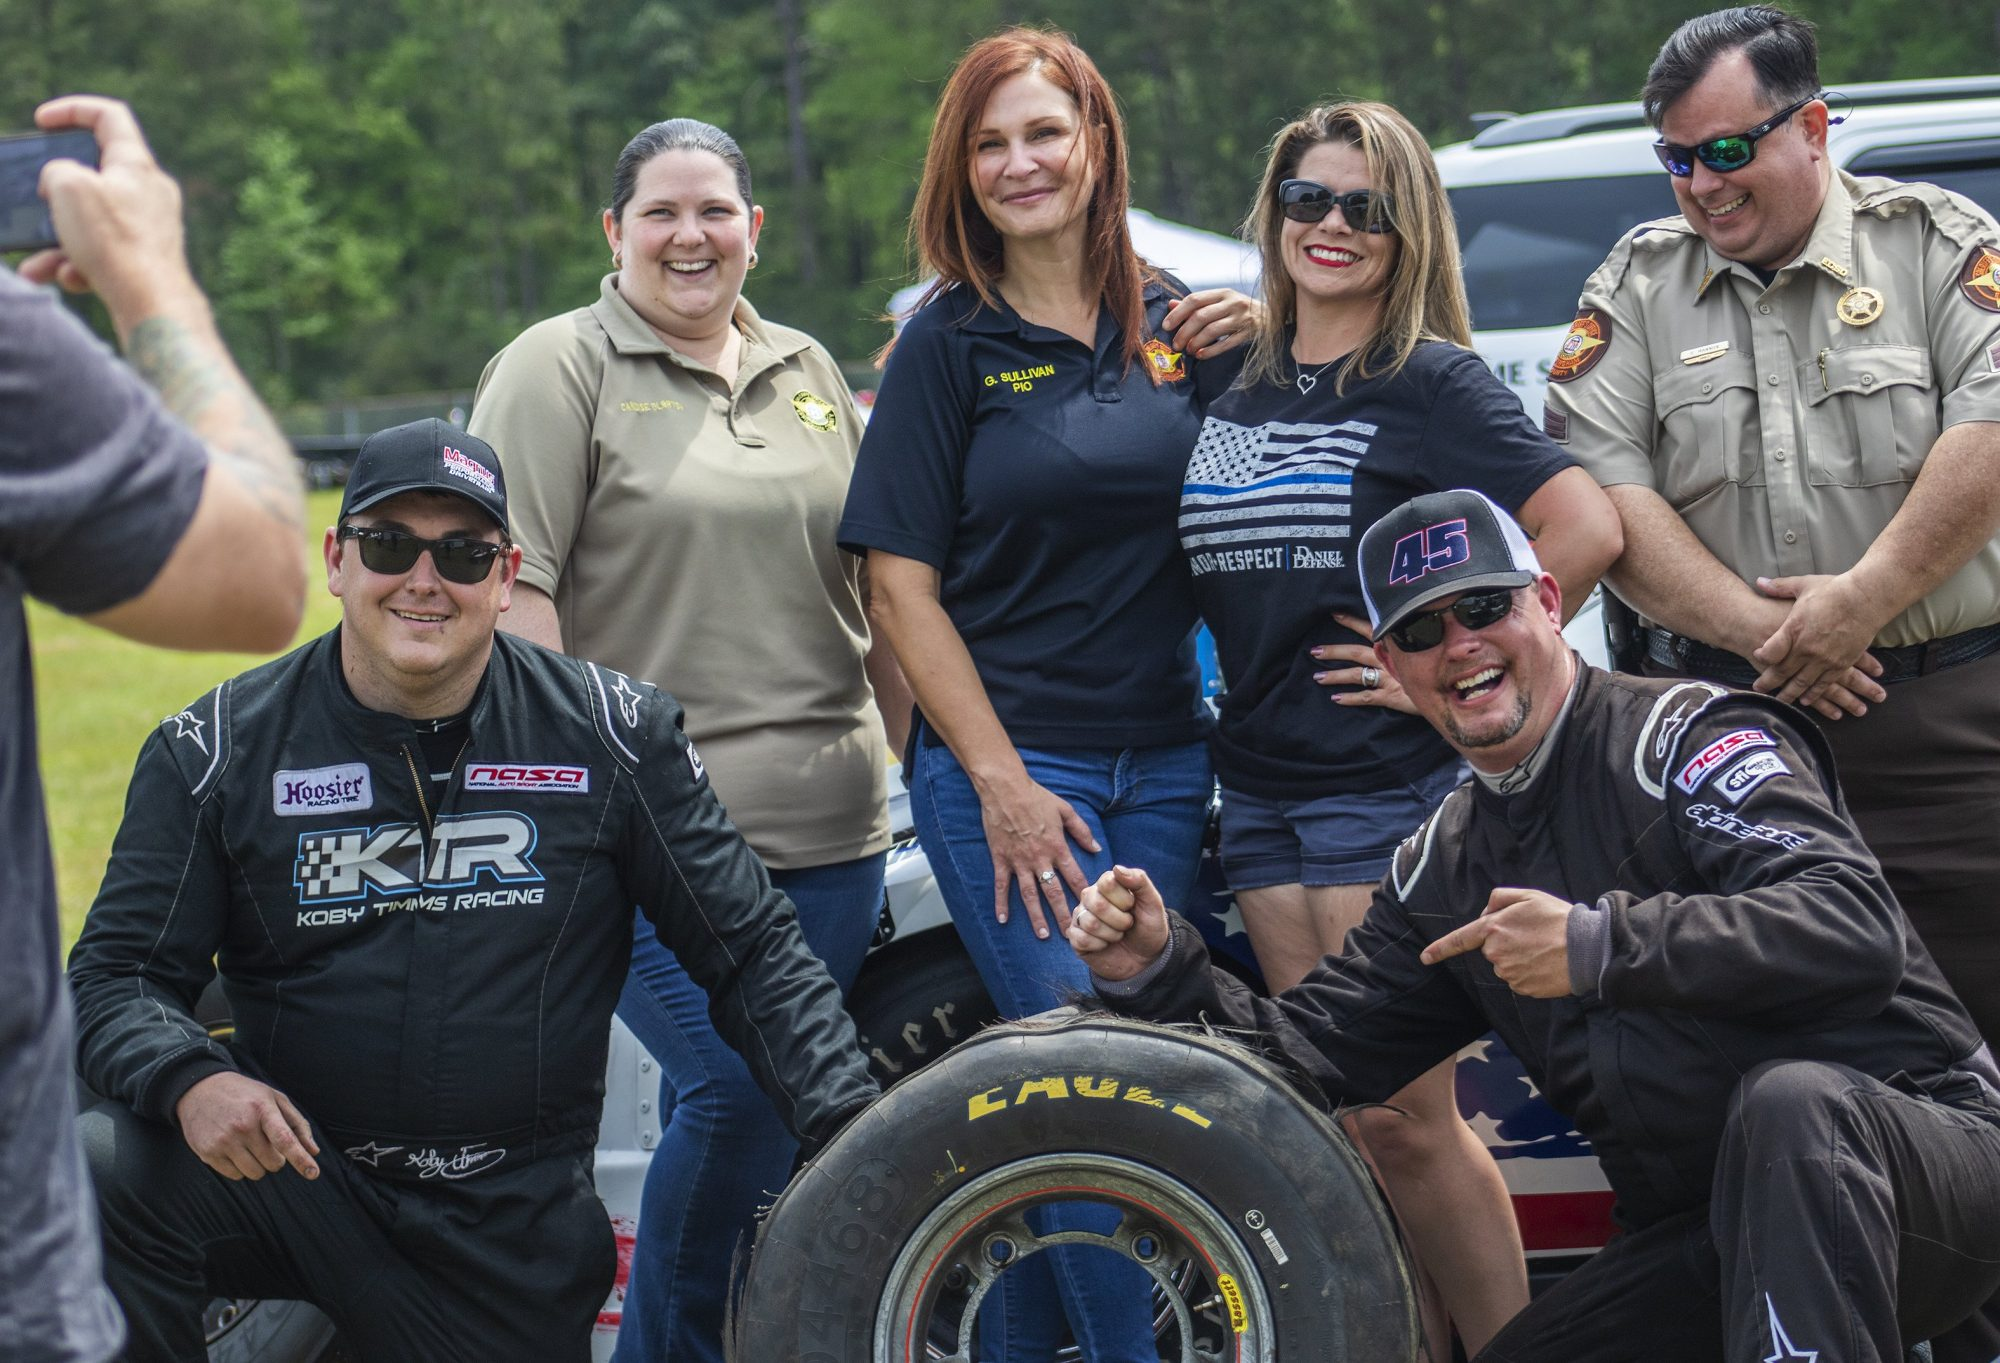 Group of people posing with blown out tire